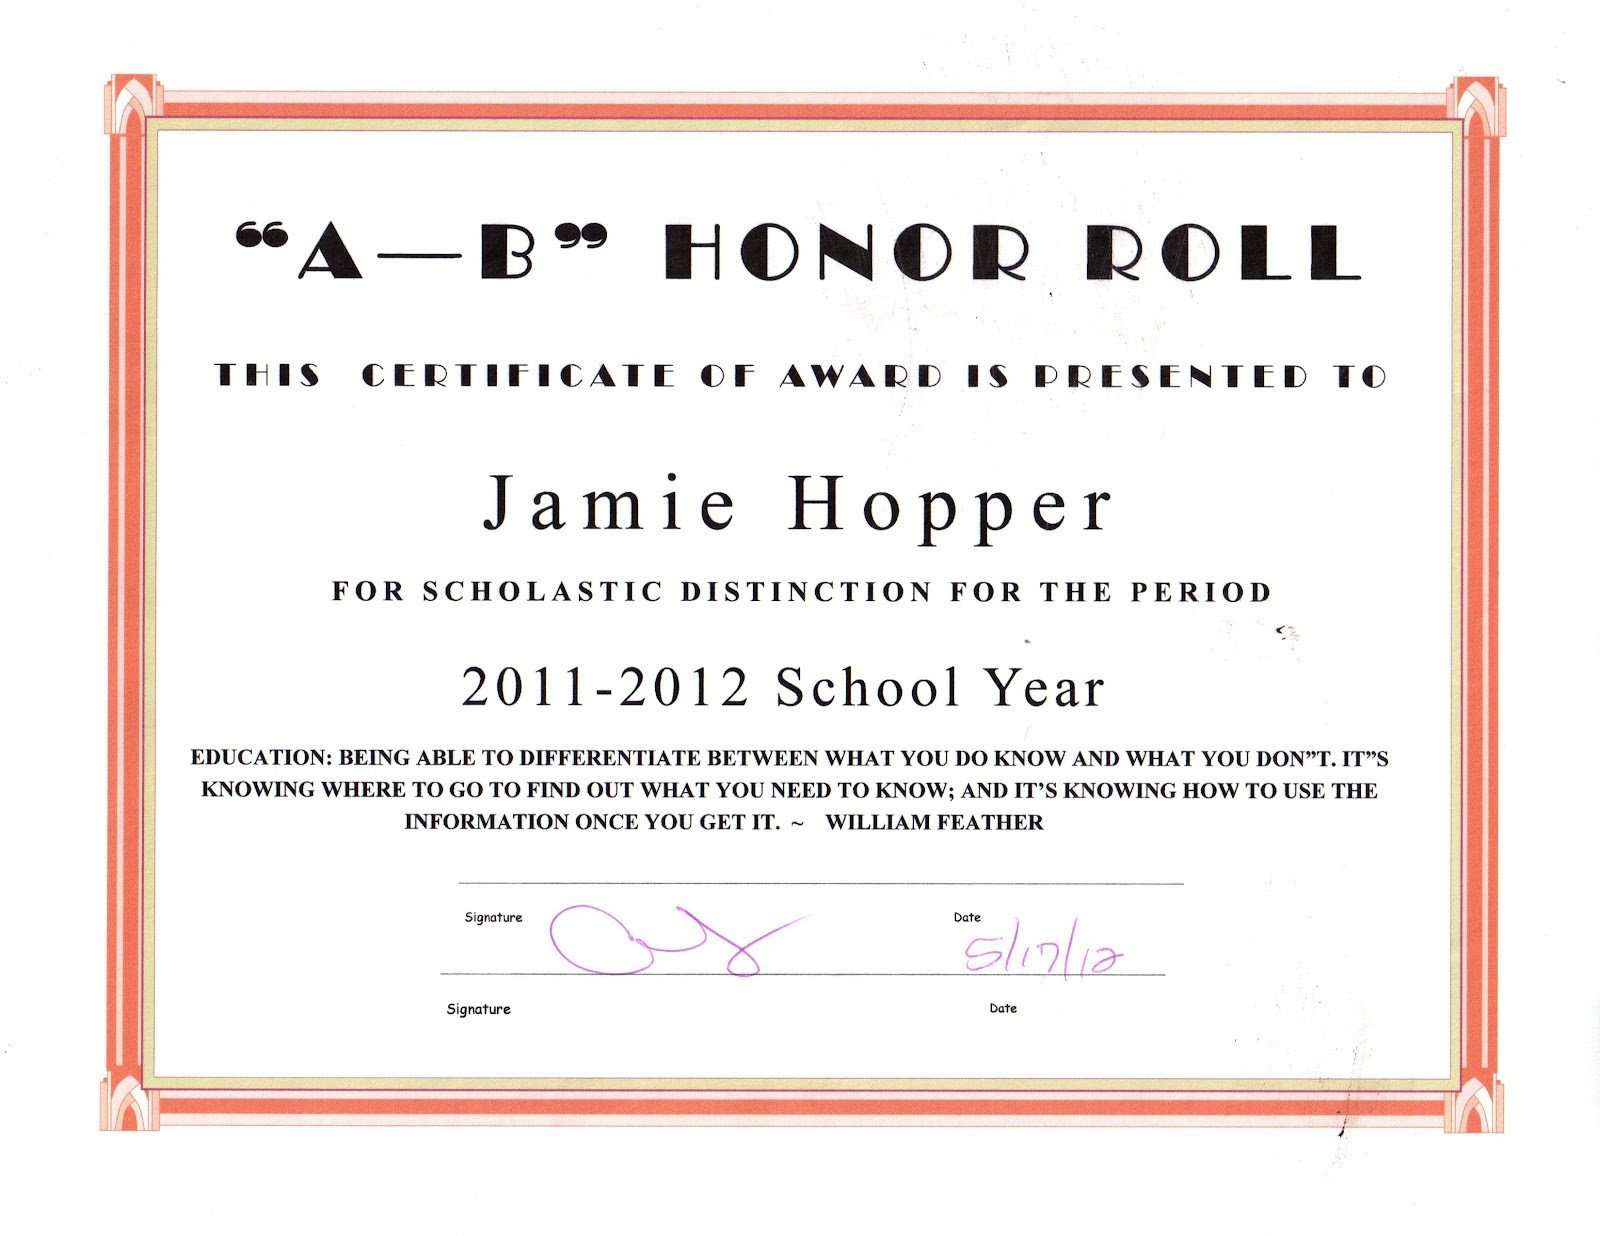 A Honor Roll Certificate the Jason Hopper Family June 2012